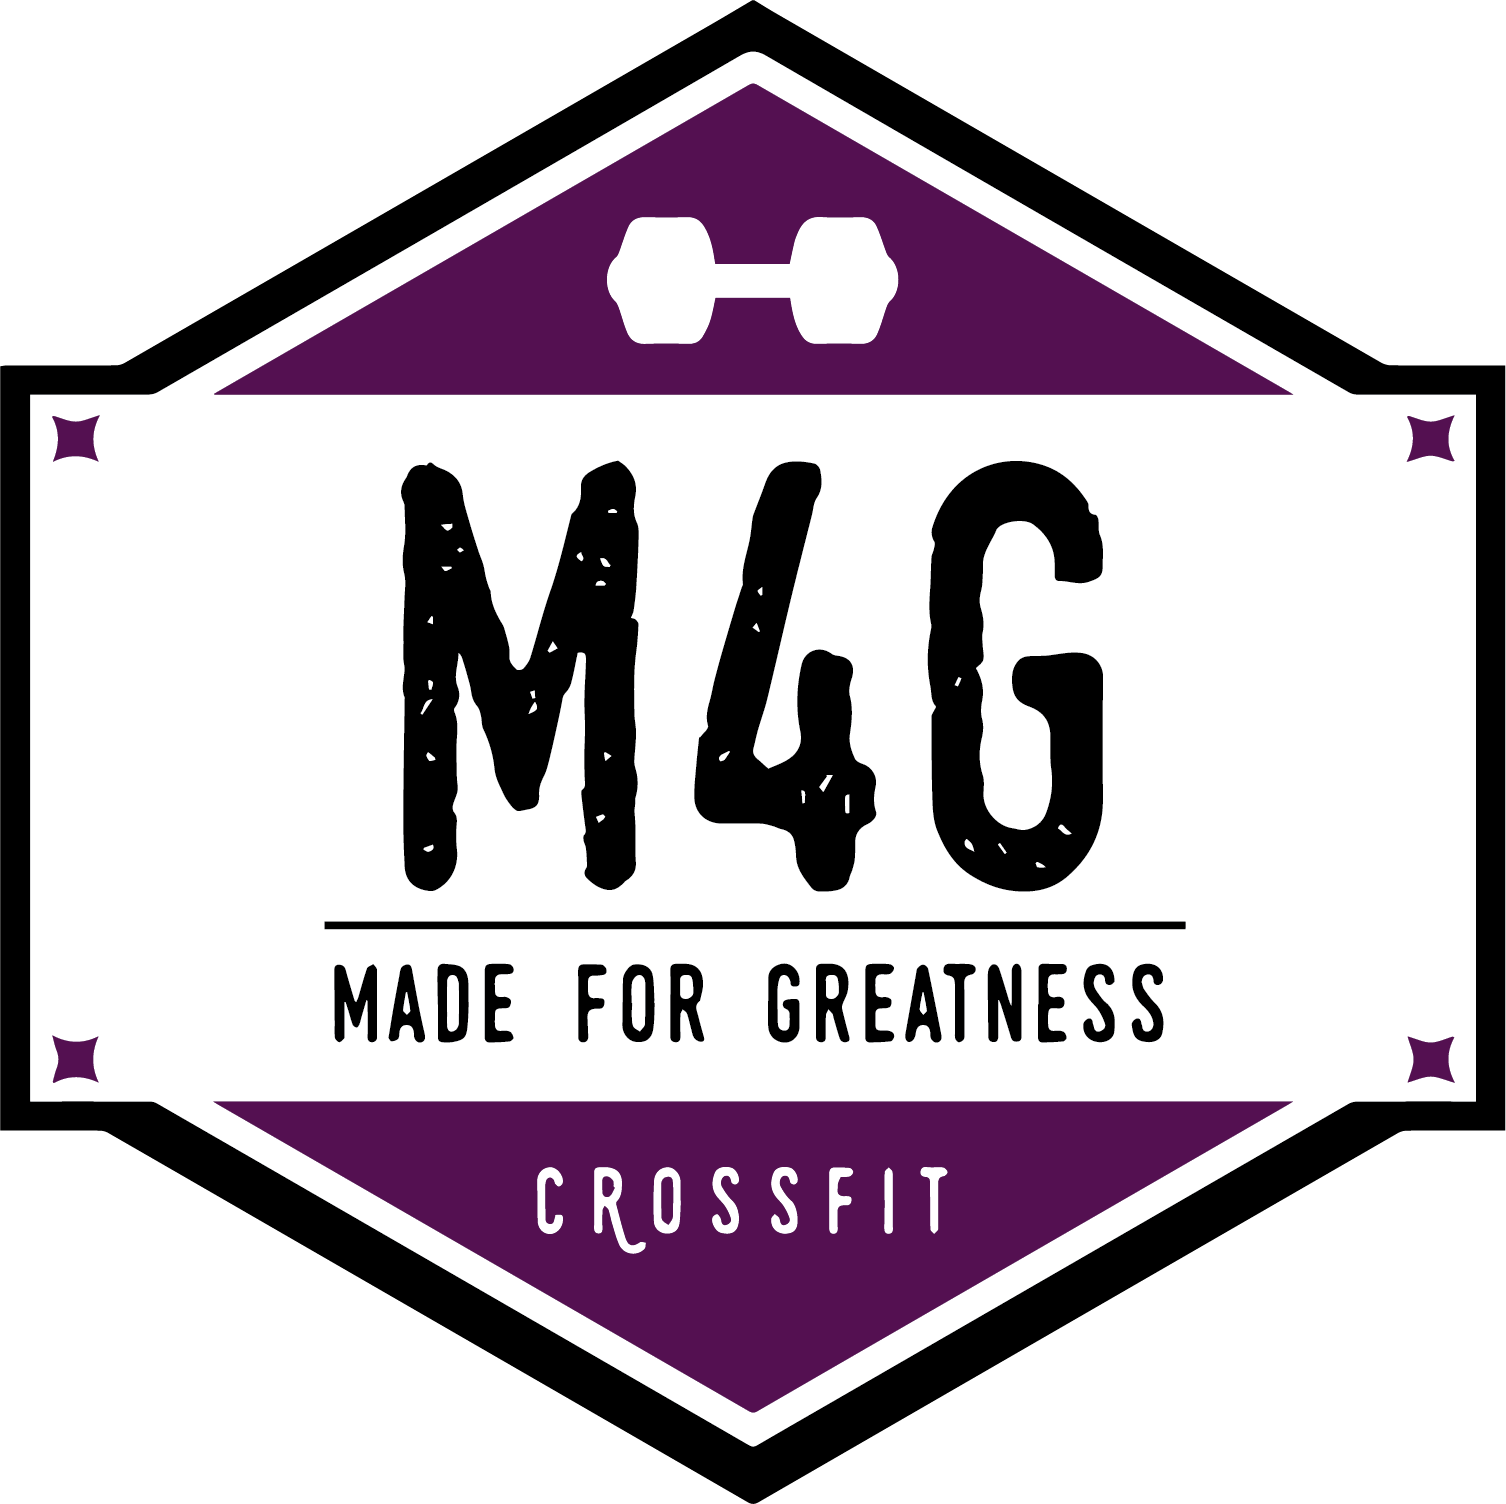 Made for Greatness CrossFit